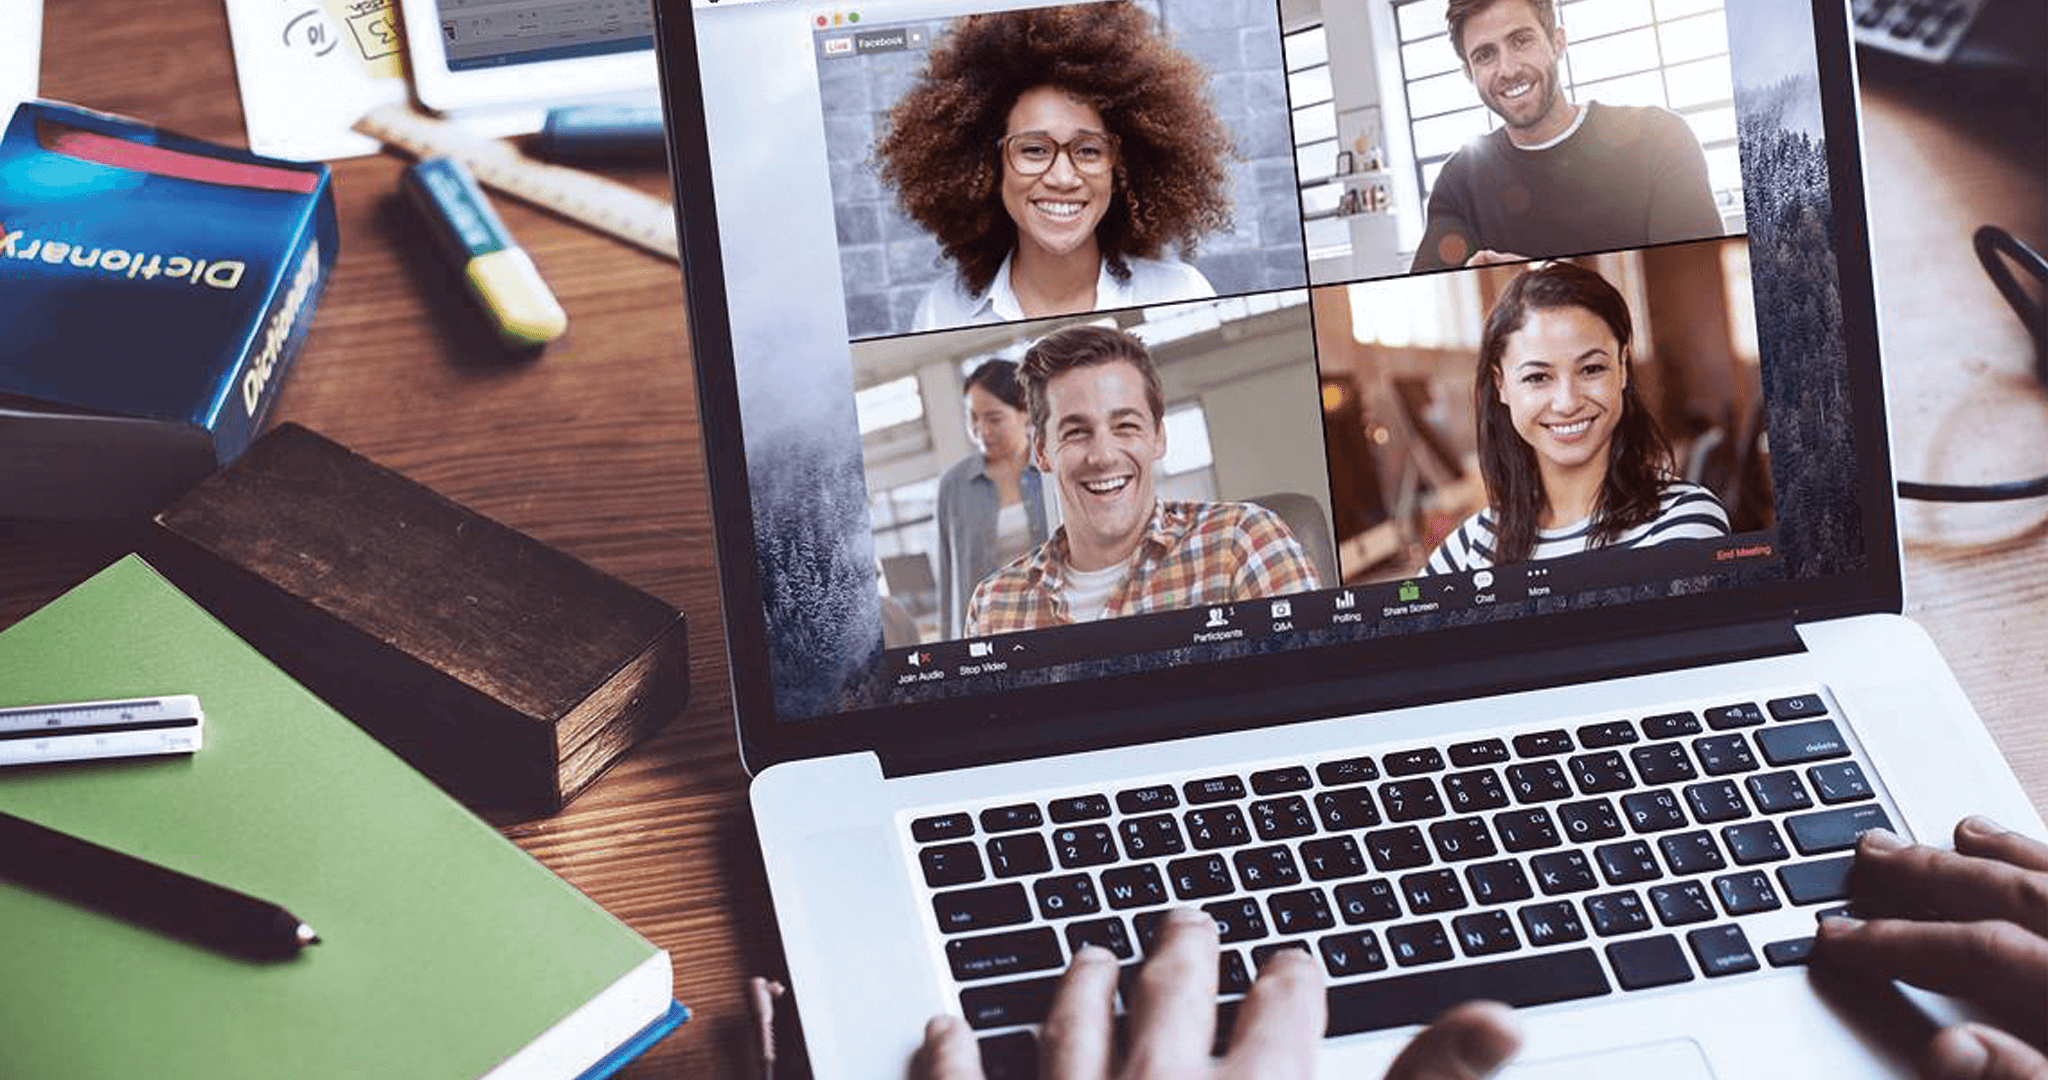 Connect with our admission counselors and select program directors during our online information sessions. Meet with us during virtual office hours or book a virtual appointment to learn about the application process.